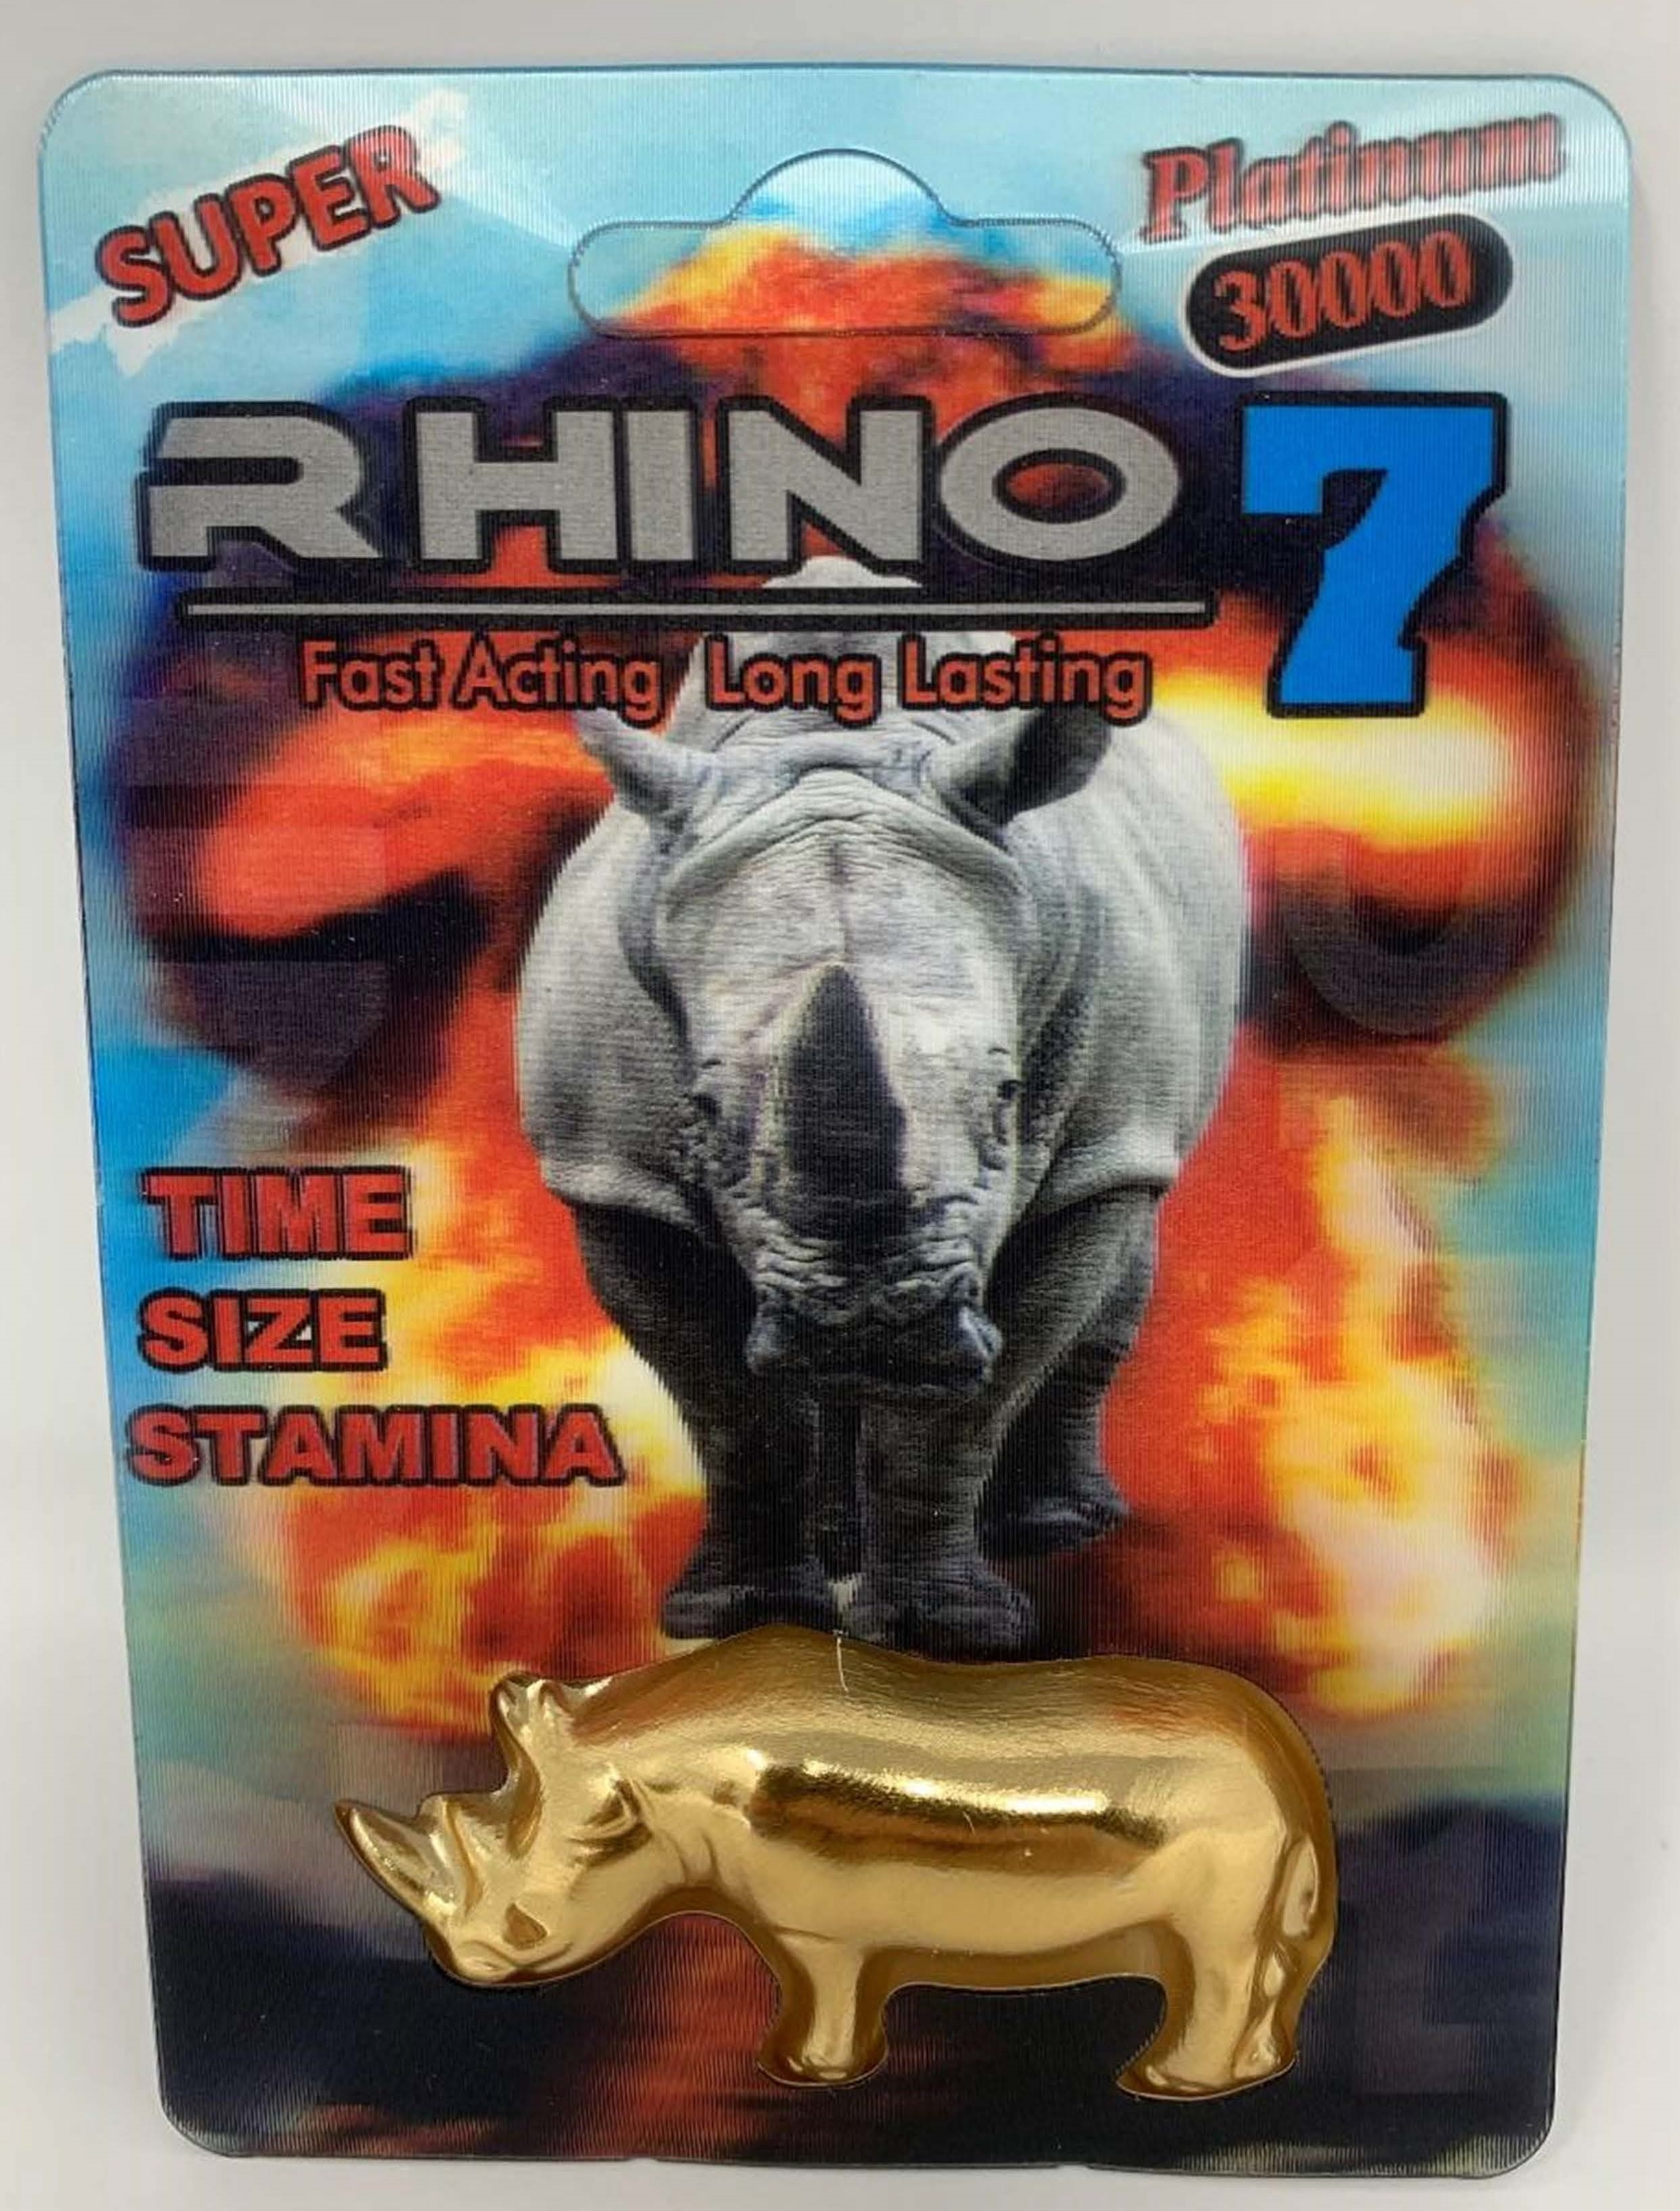 Image of the illigal product: Rhino 7 Platinum 30000